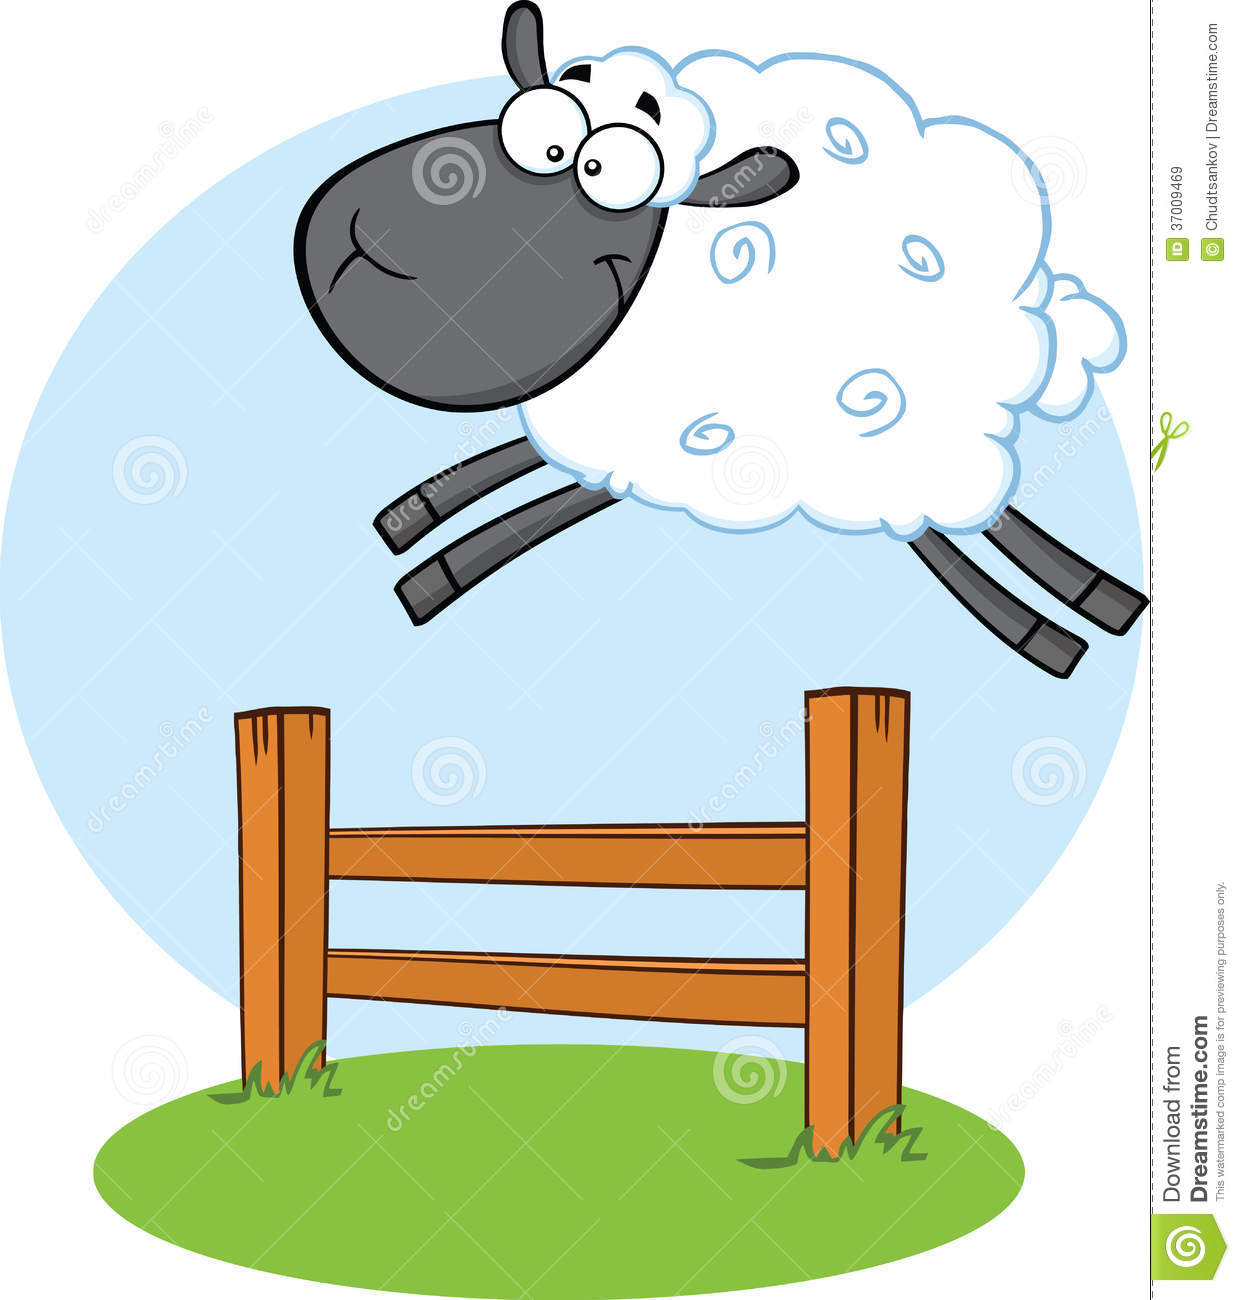 Counting Sheep Illustrations And Clip Art 319 Counting Sheep Royalty